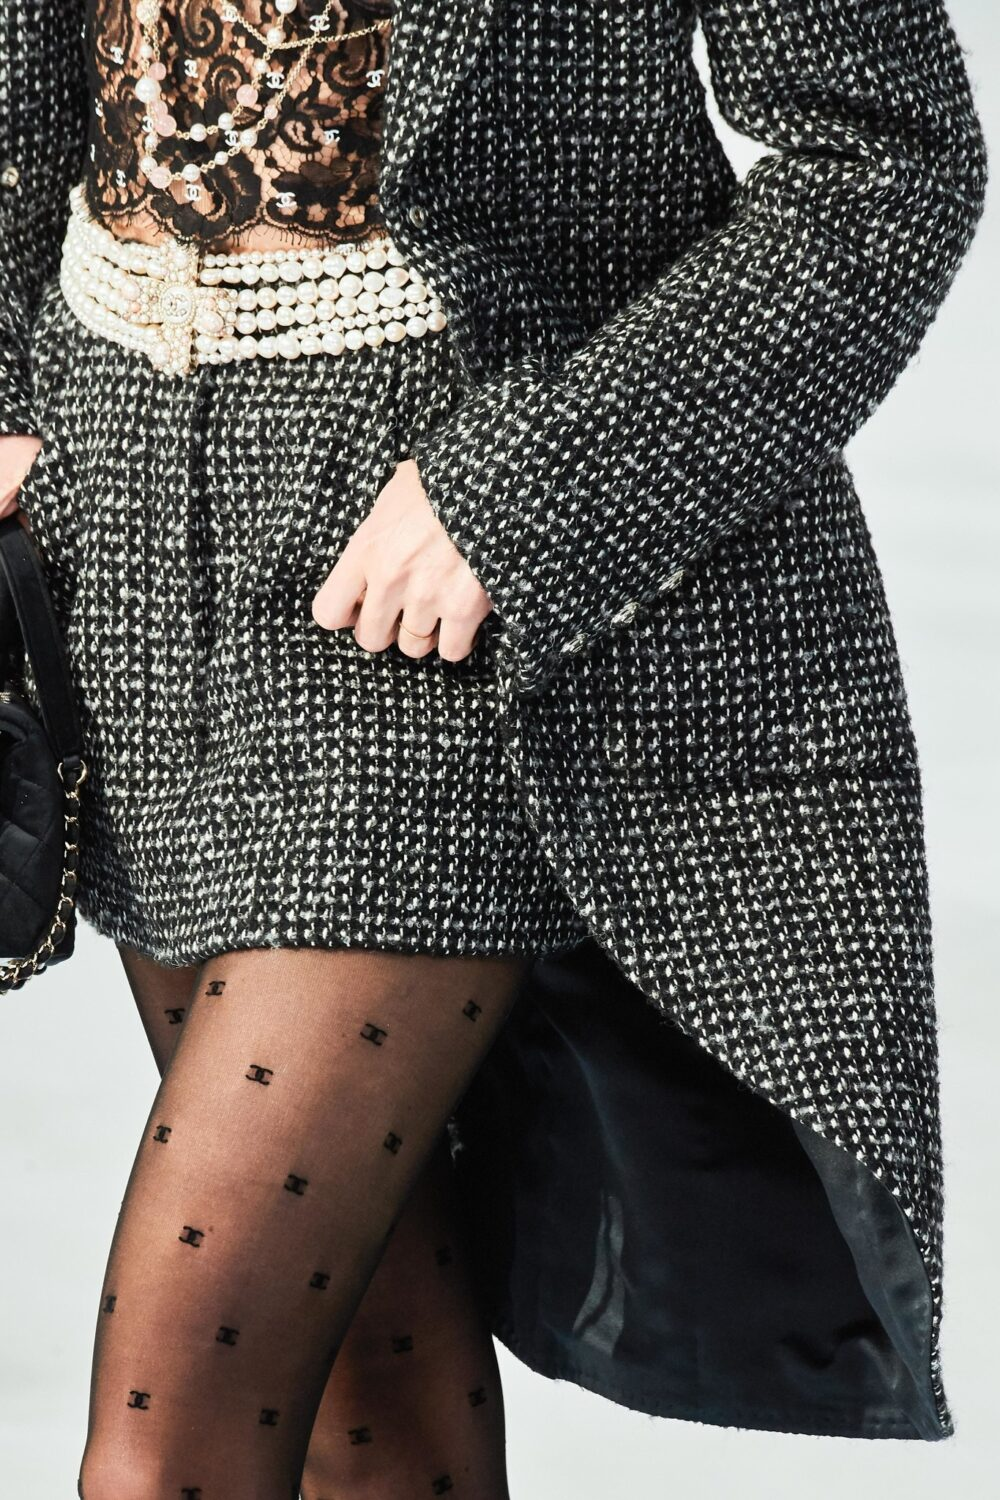 2020 Life Lessons - Chanel FW 2020